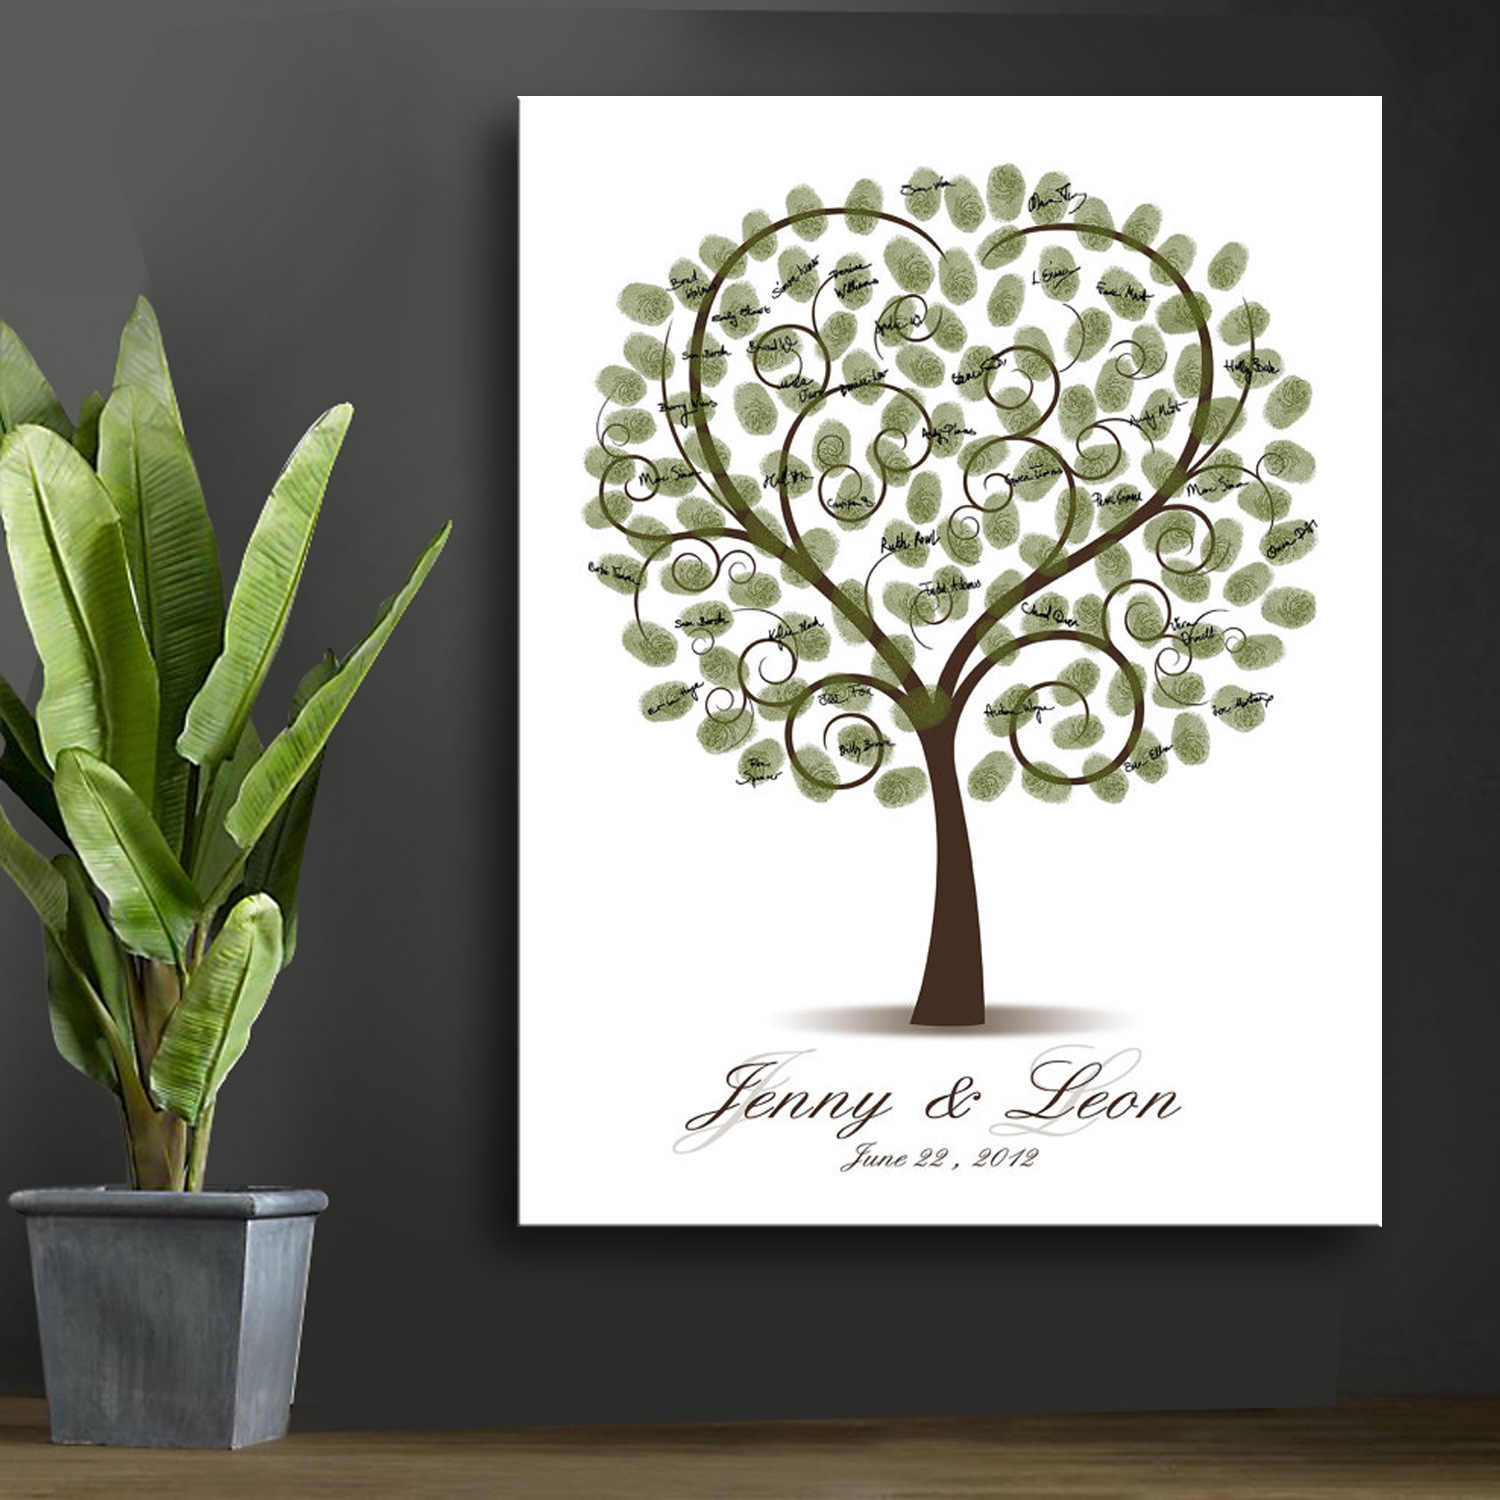 Wedding Guest Book Personalized Wedding Gifts for Guests Lovebird Fingerprint Tree Painting Party Decor livre d'or mariage